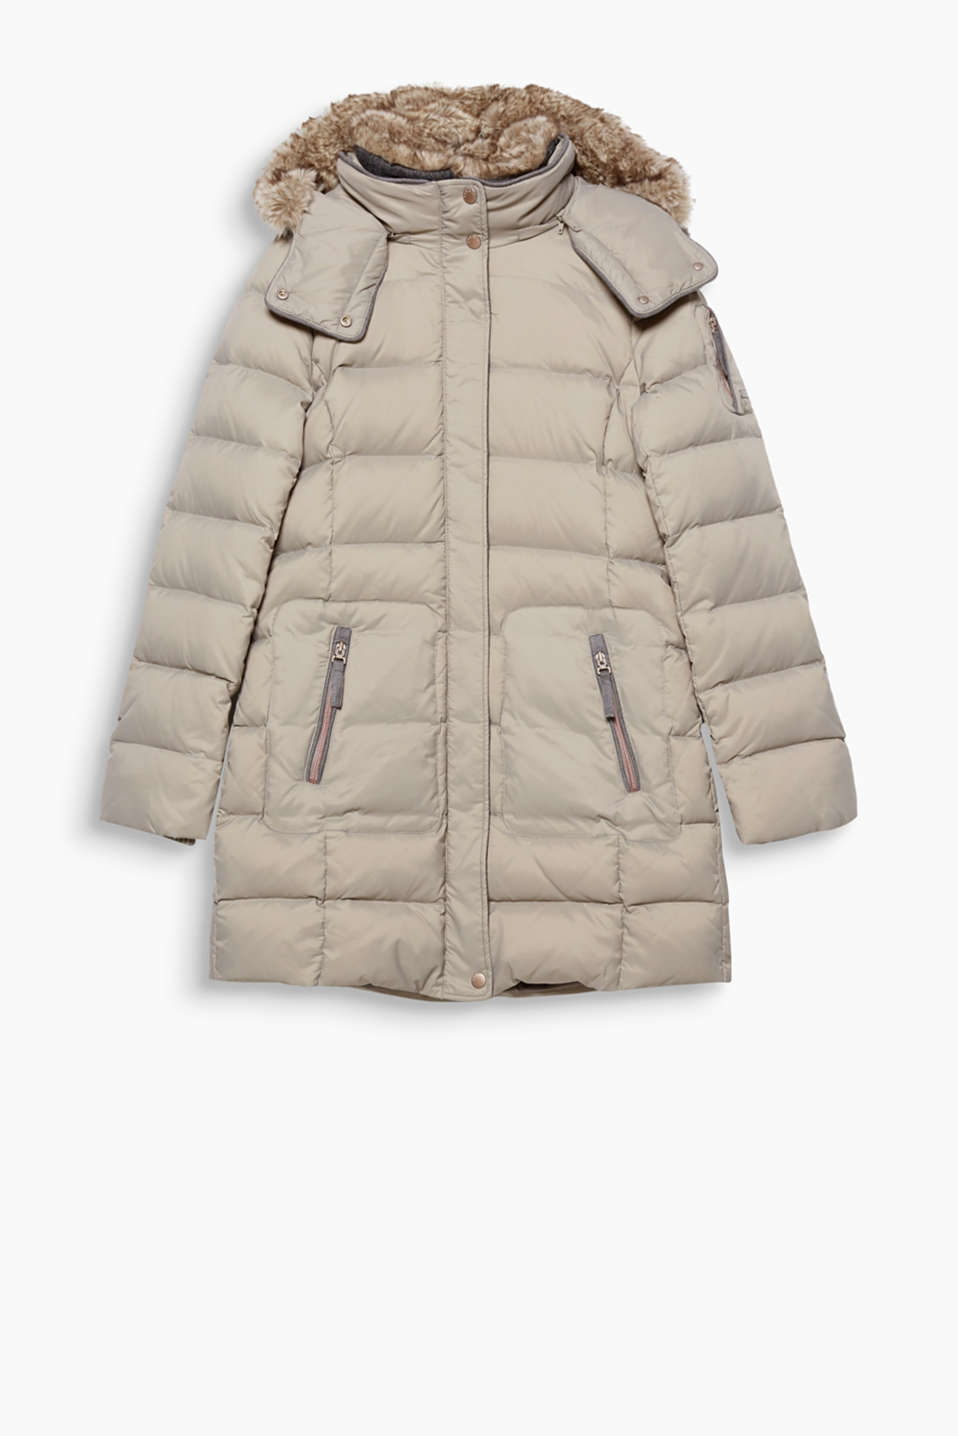 This fitted, functional coat with RDS-certified down/feather filling is a real all-rounder!